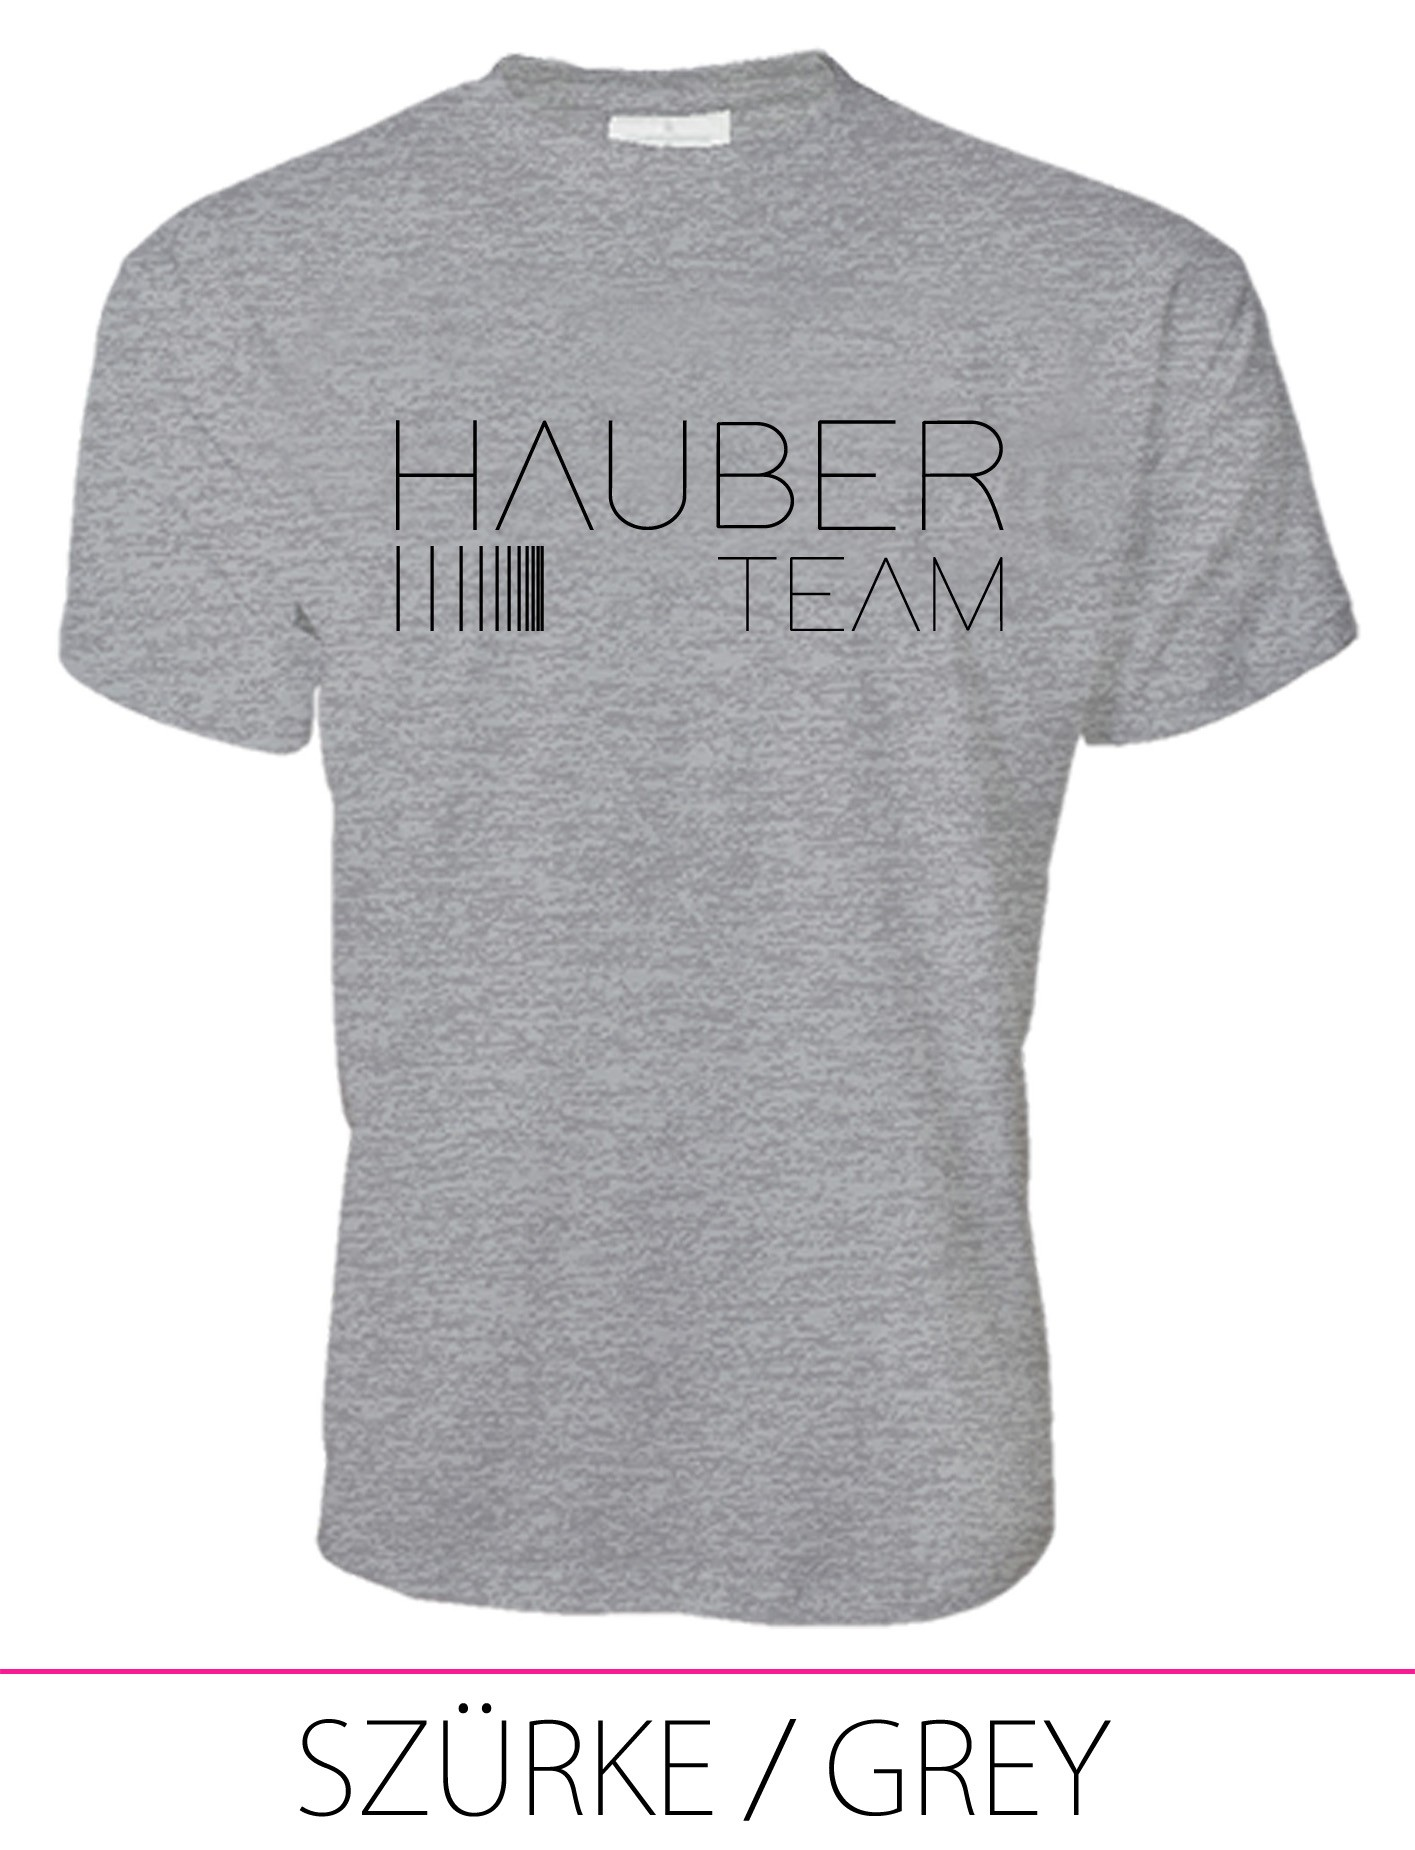 MEN CREW NECK T-SHIRT / HAUBER TEAM GREY